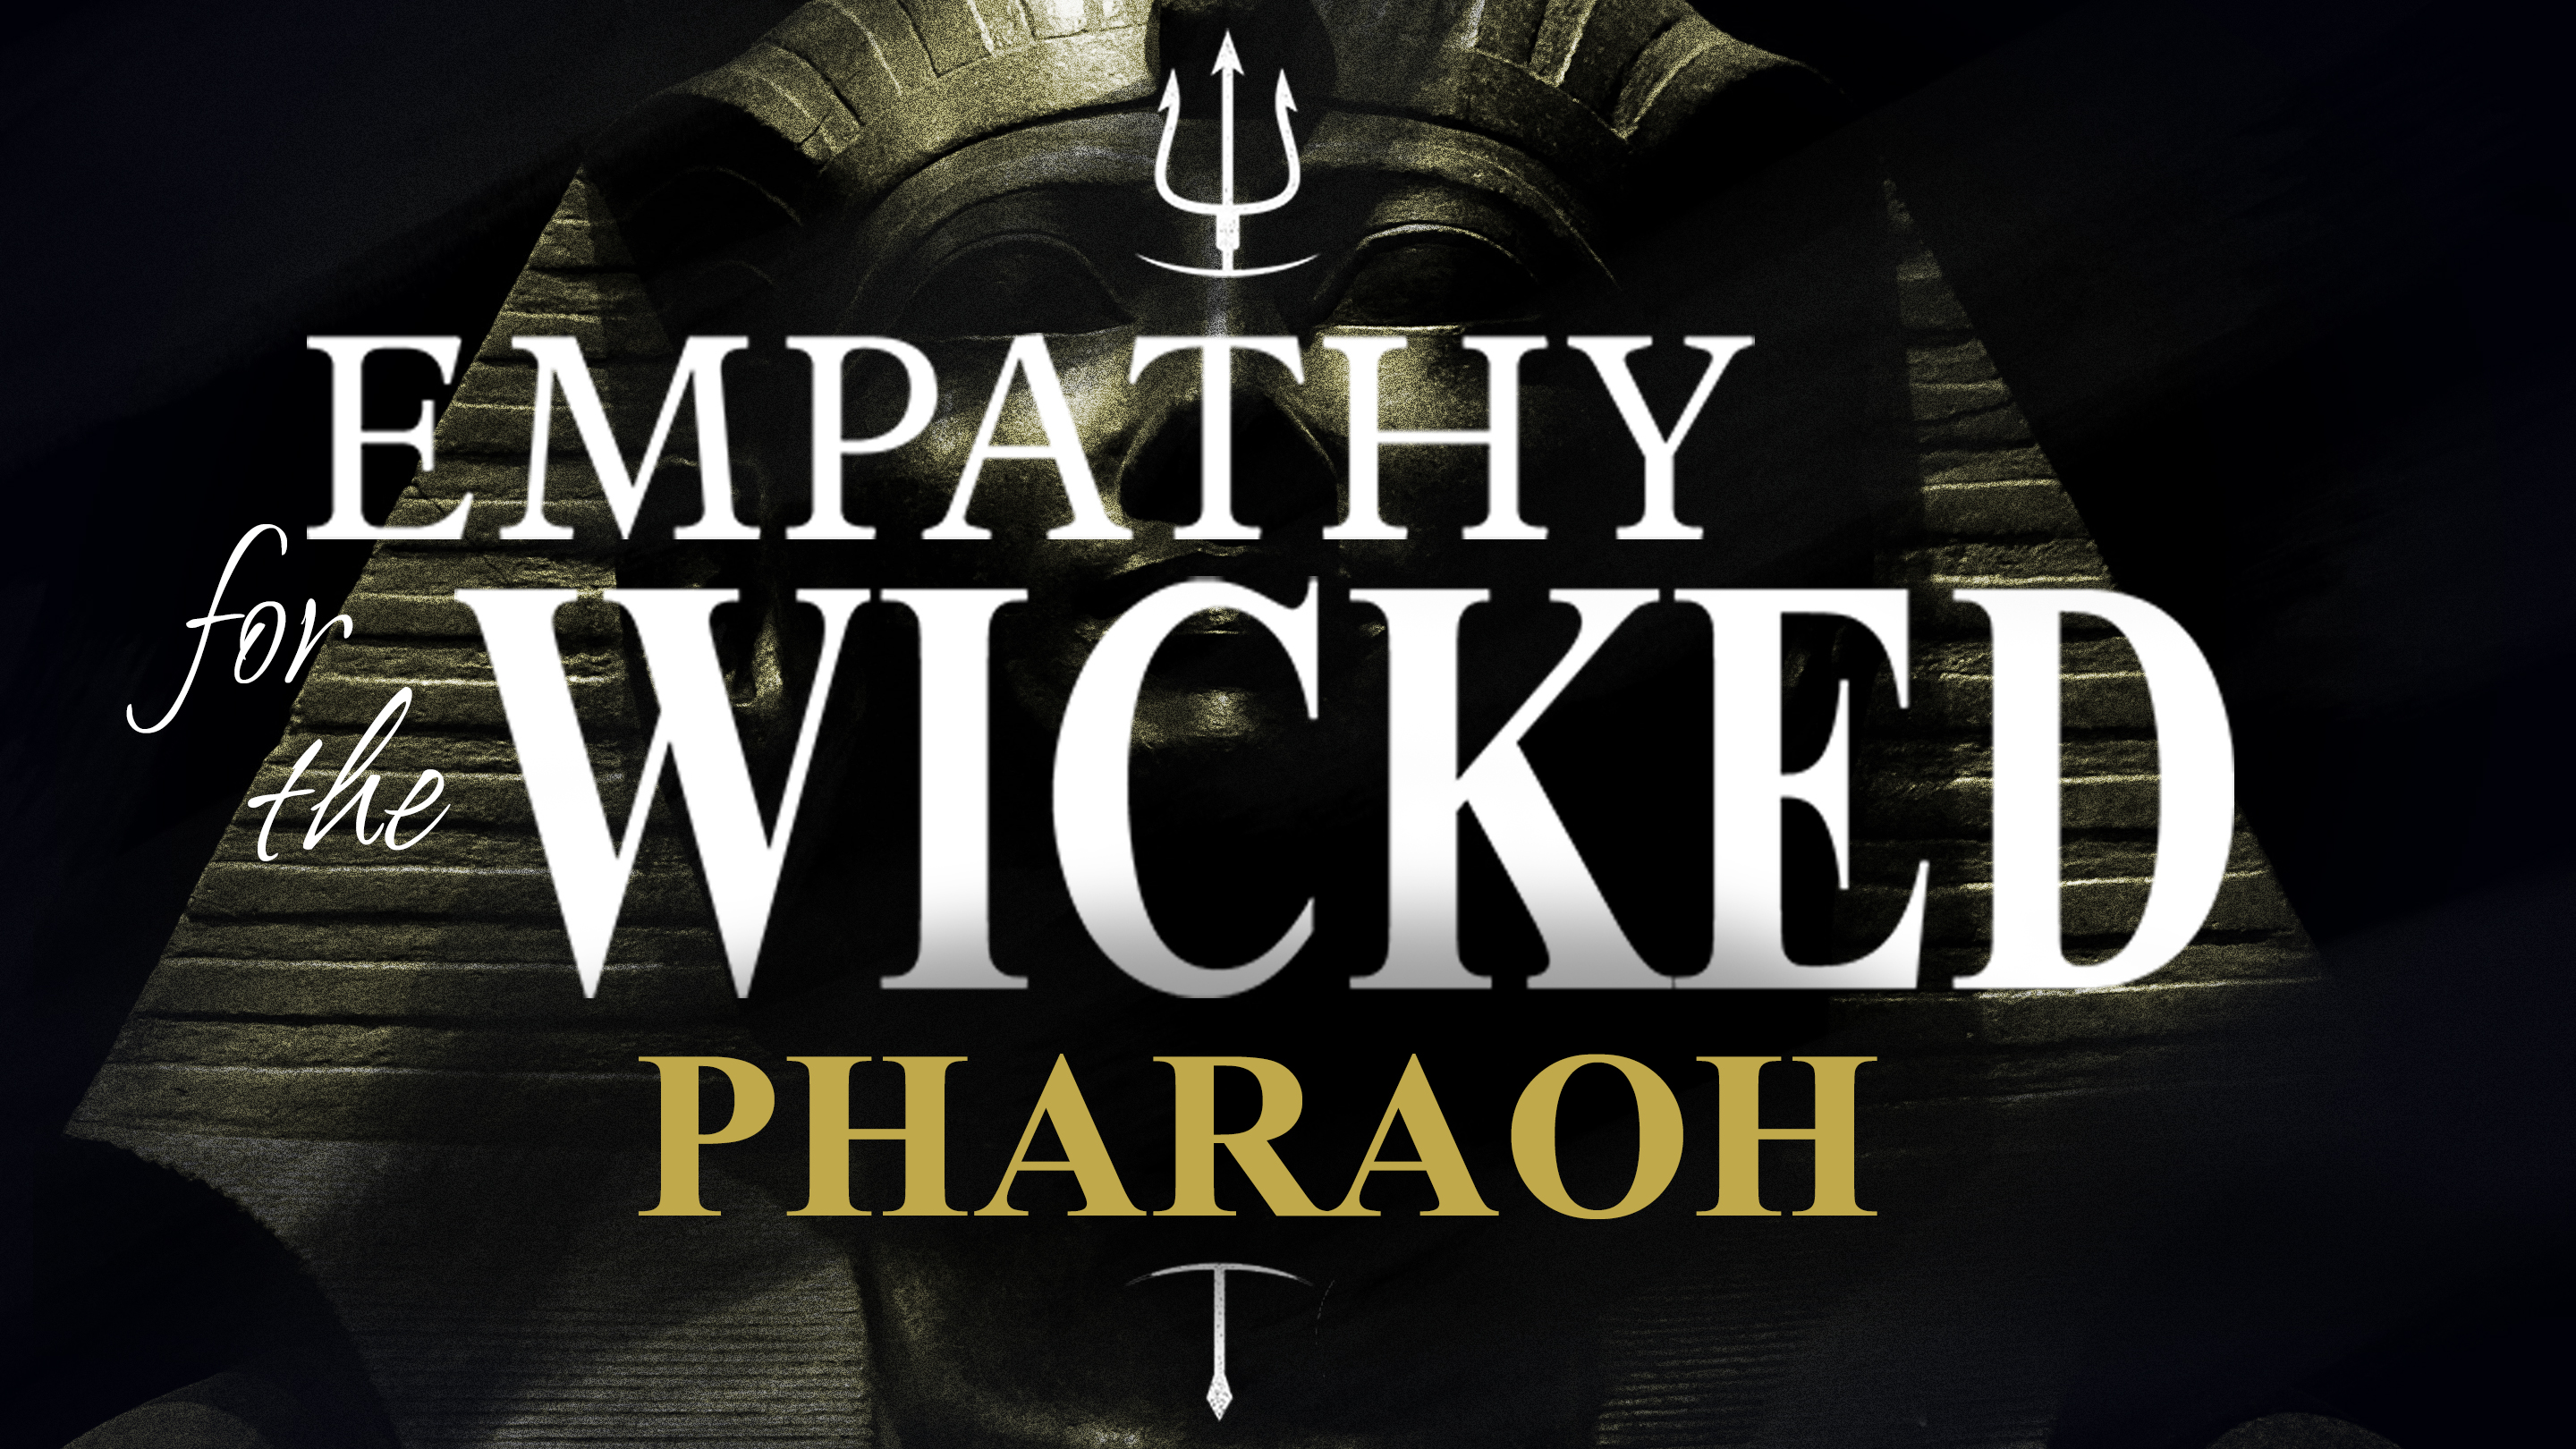 Empathy for the Wicked: PHARAOH